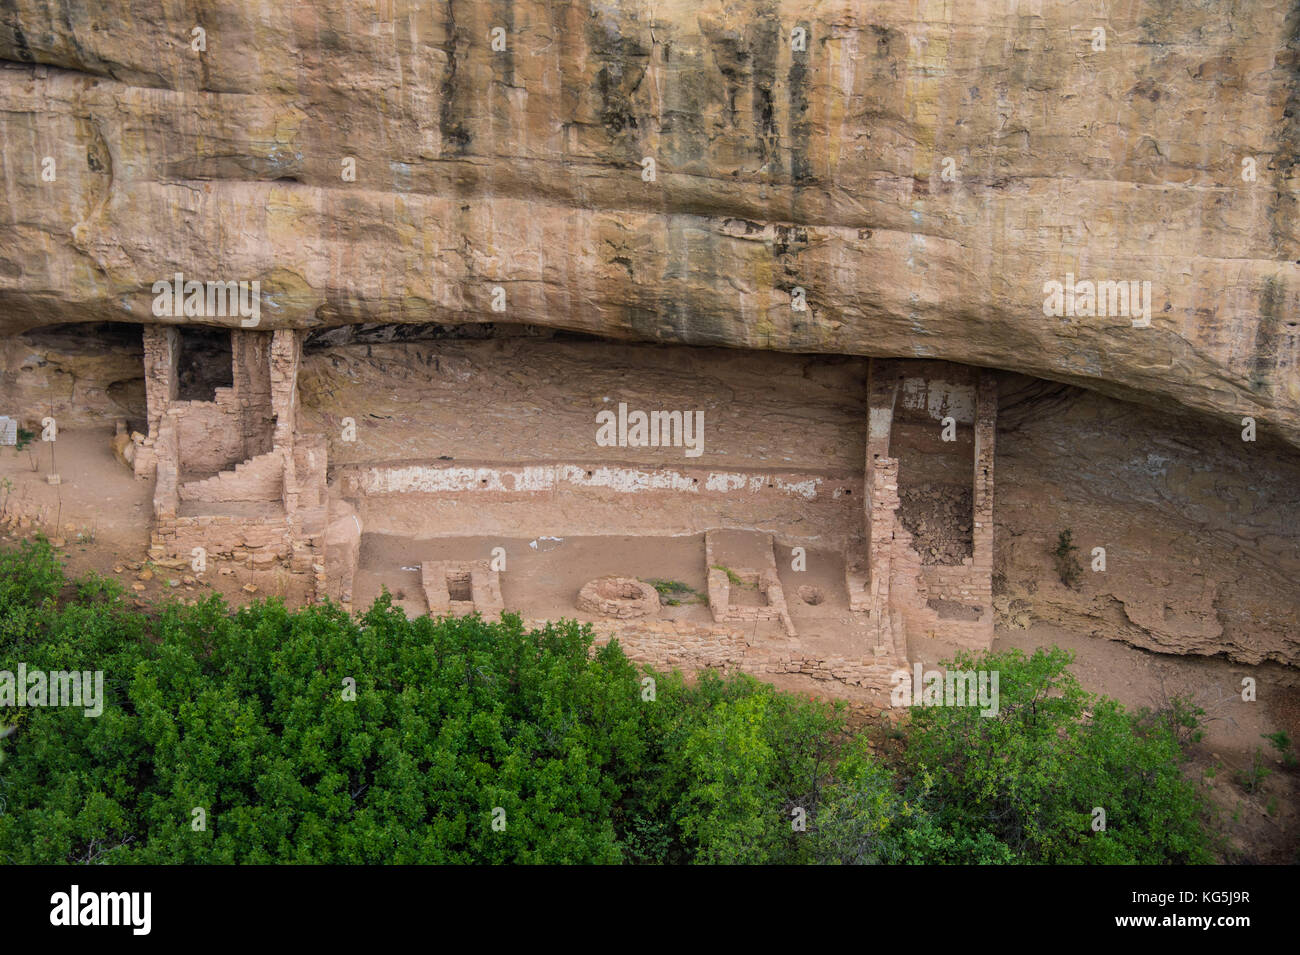 mesa verde national park hindu single men Watch movies and tv shows online watch from devices like ios, android, pc, ps4, xbox one and more registration is 100% free and easy.